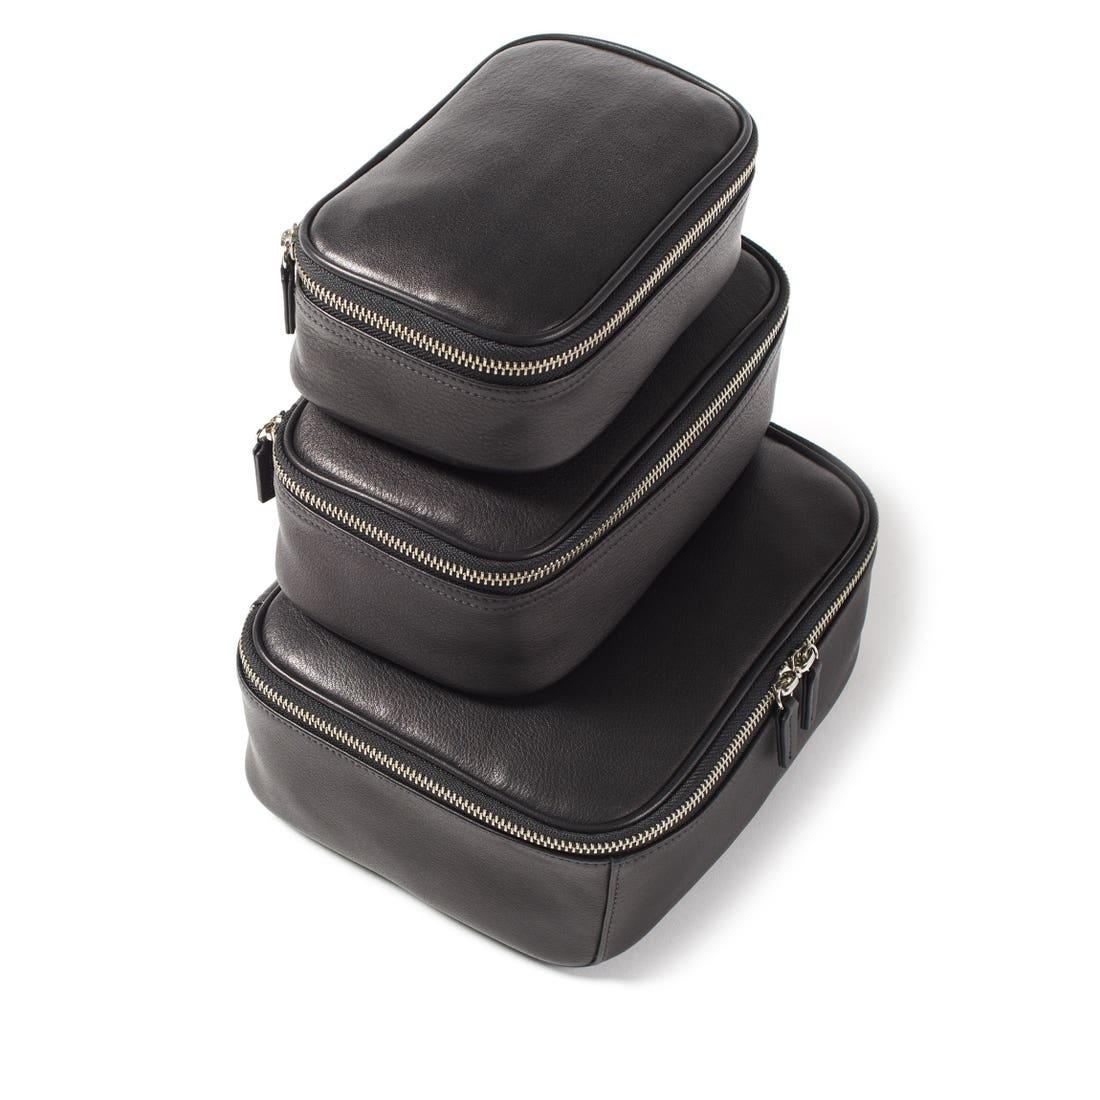 Nested Tech Bag Organizer Trio